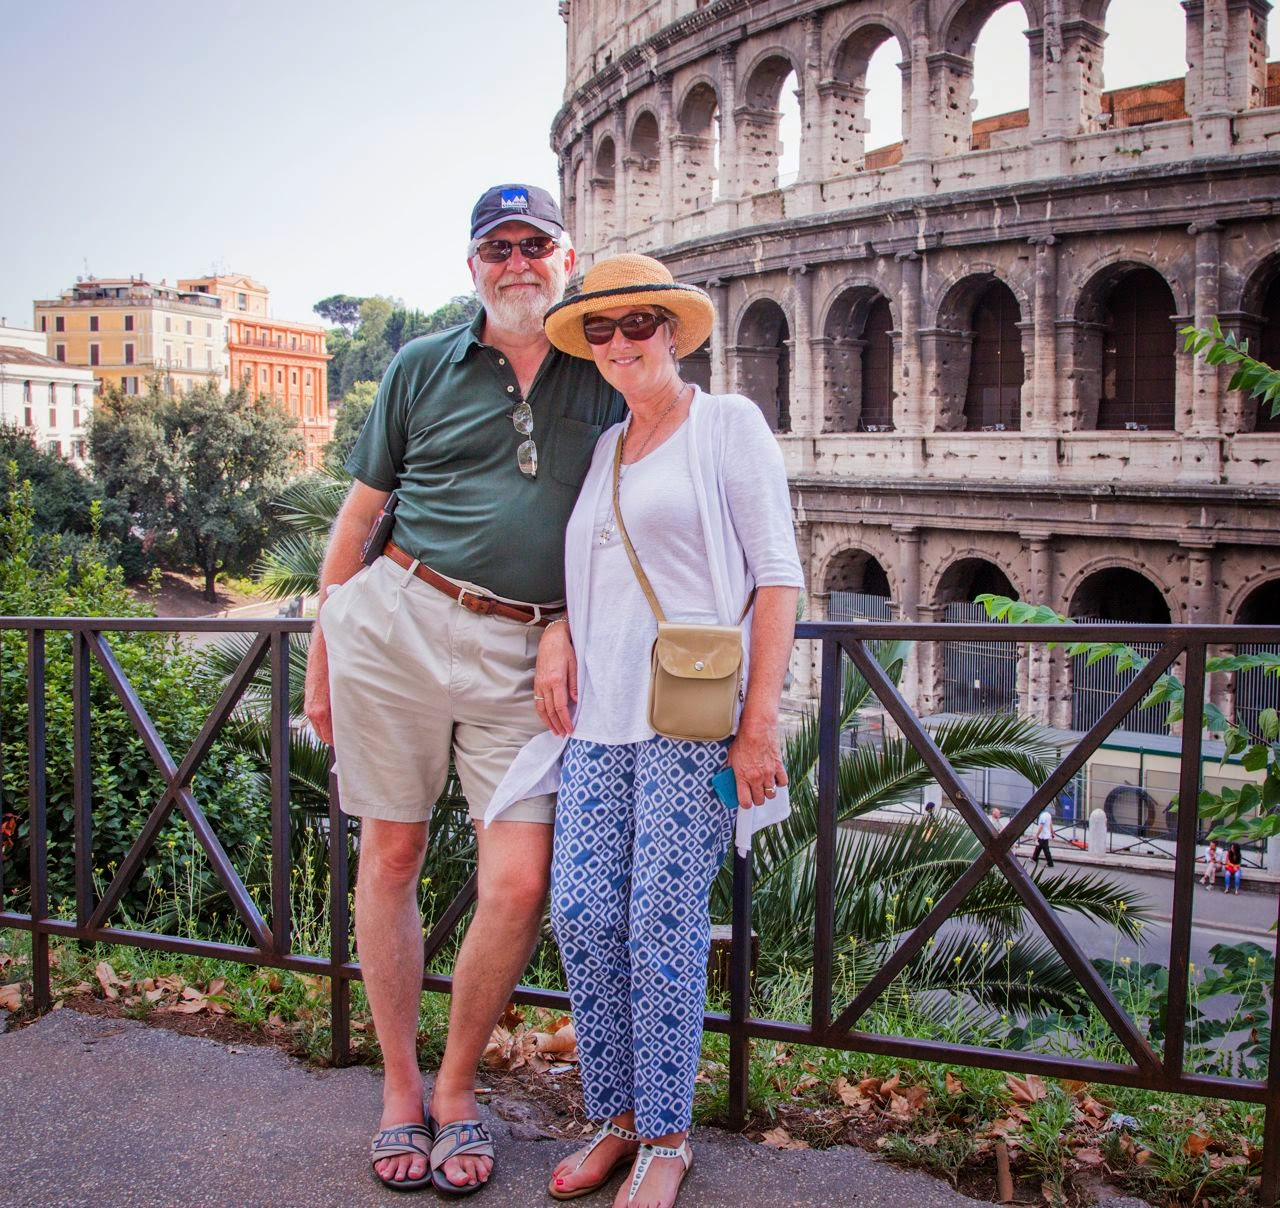 CYNfull Living: SEPTEMBER 2014 ITALY TRIP >>>> ROME AND TUSCANY